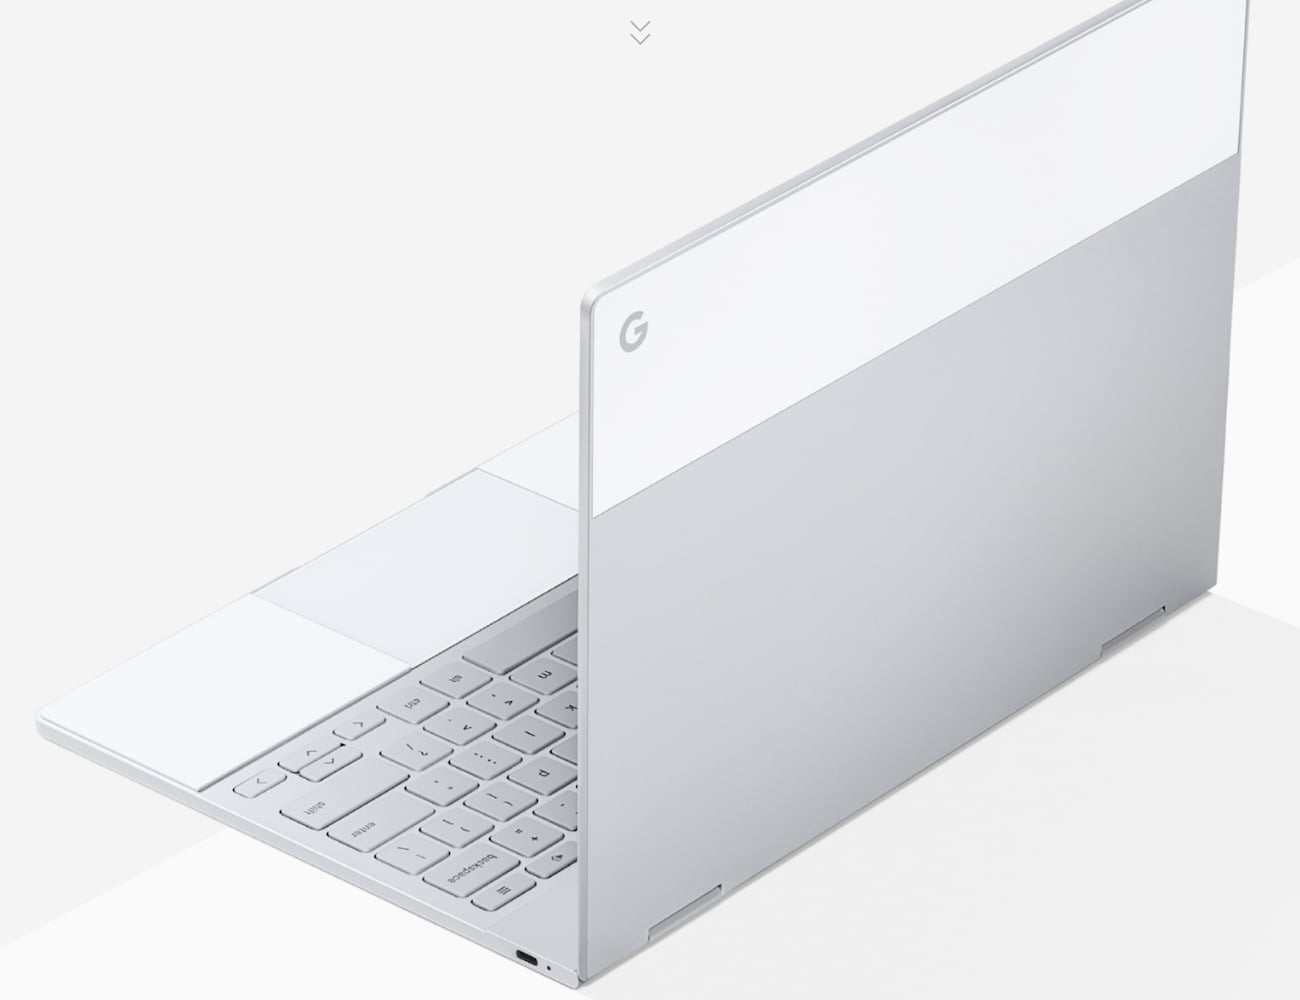 Google Pixelbook High-Performance Chromebook